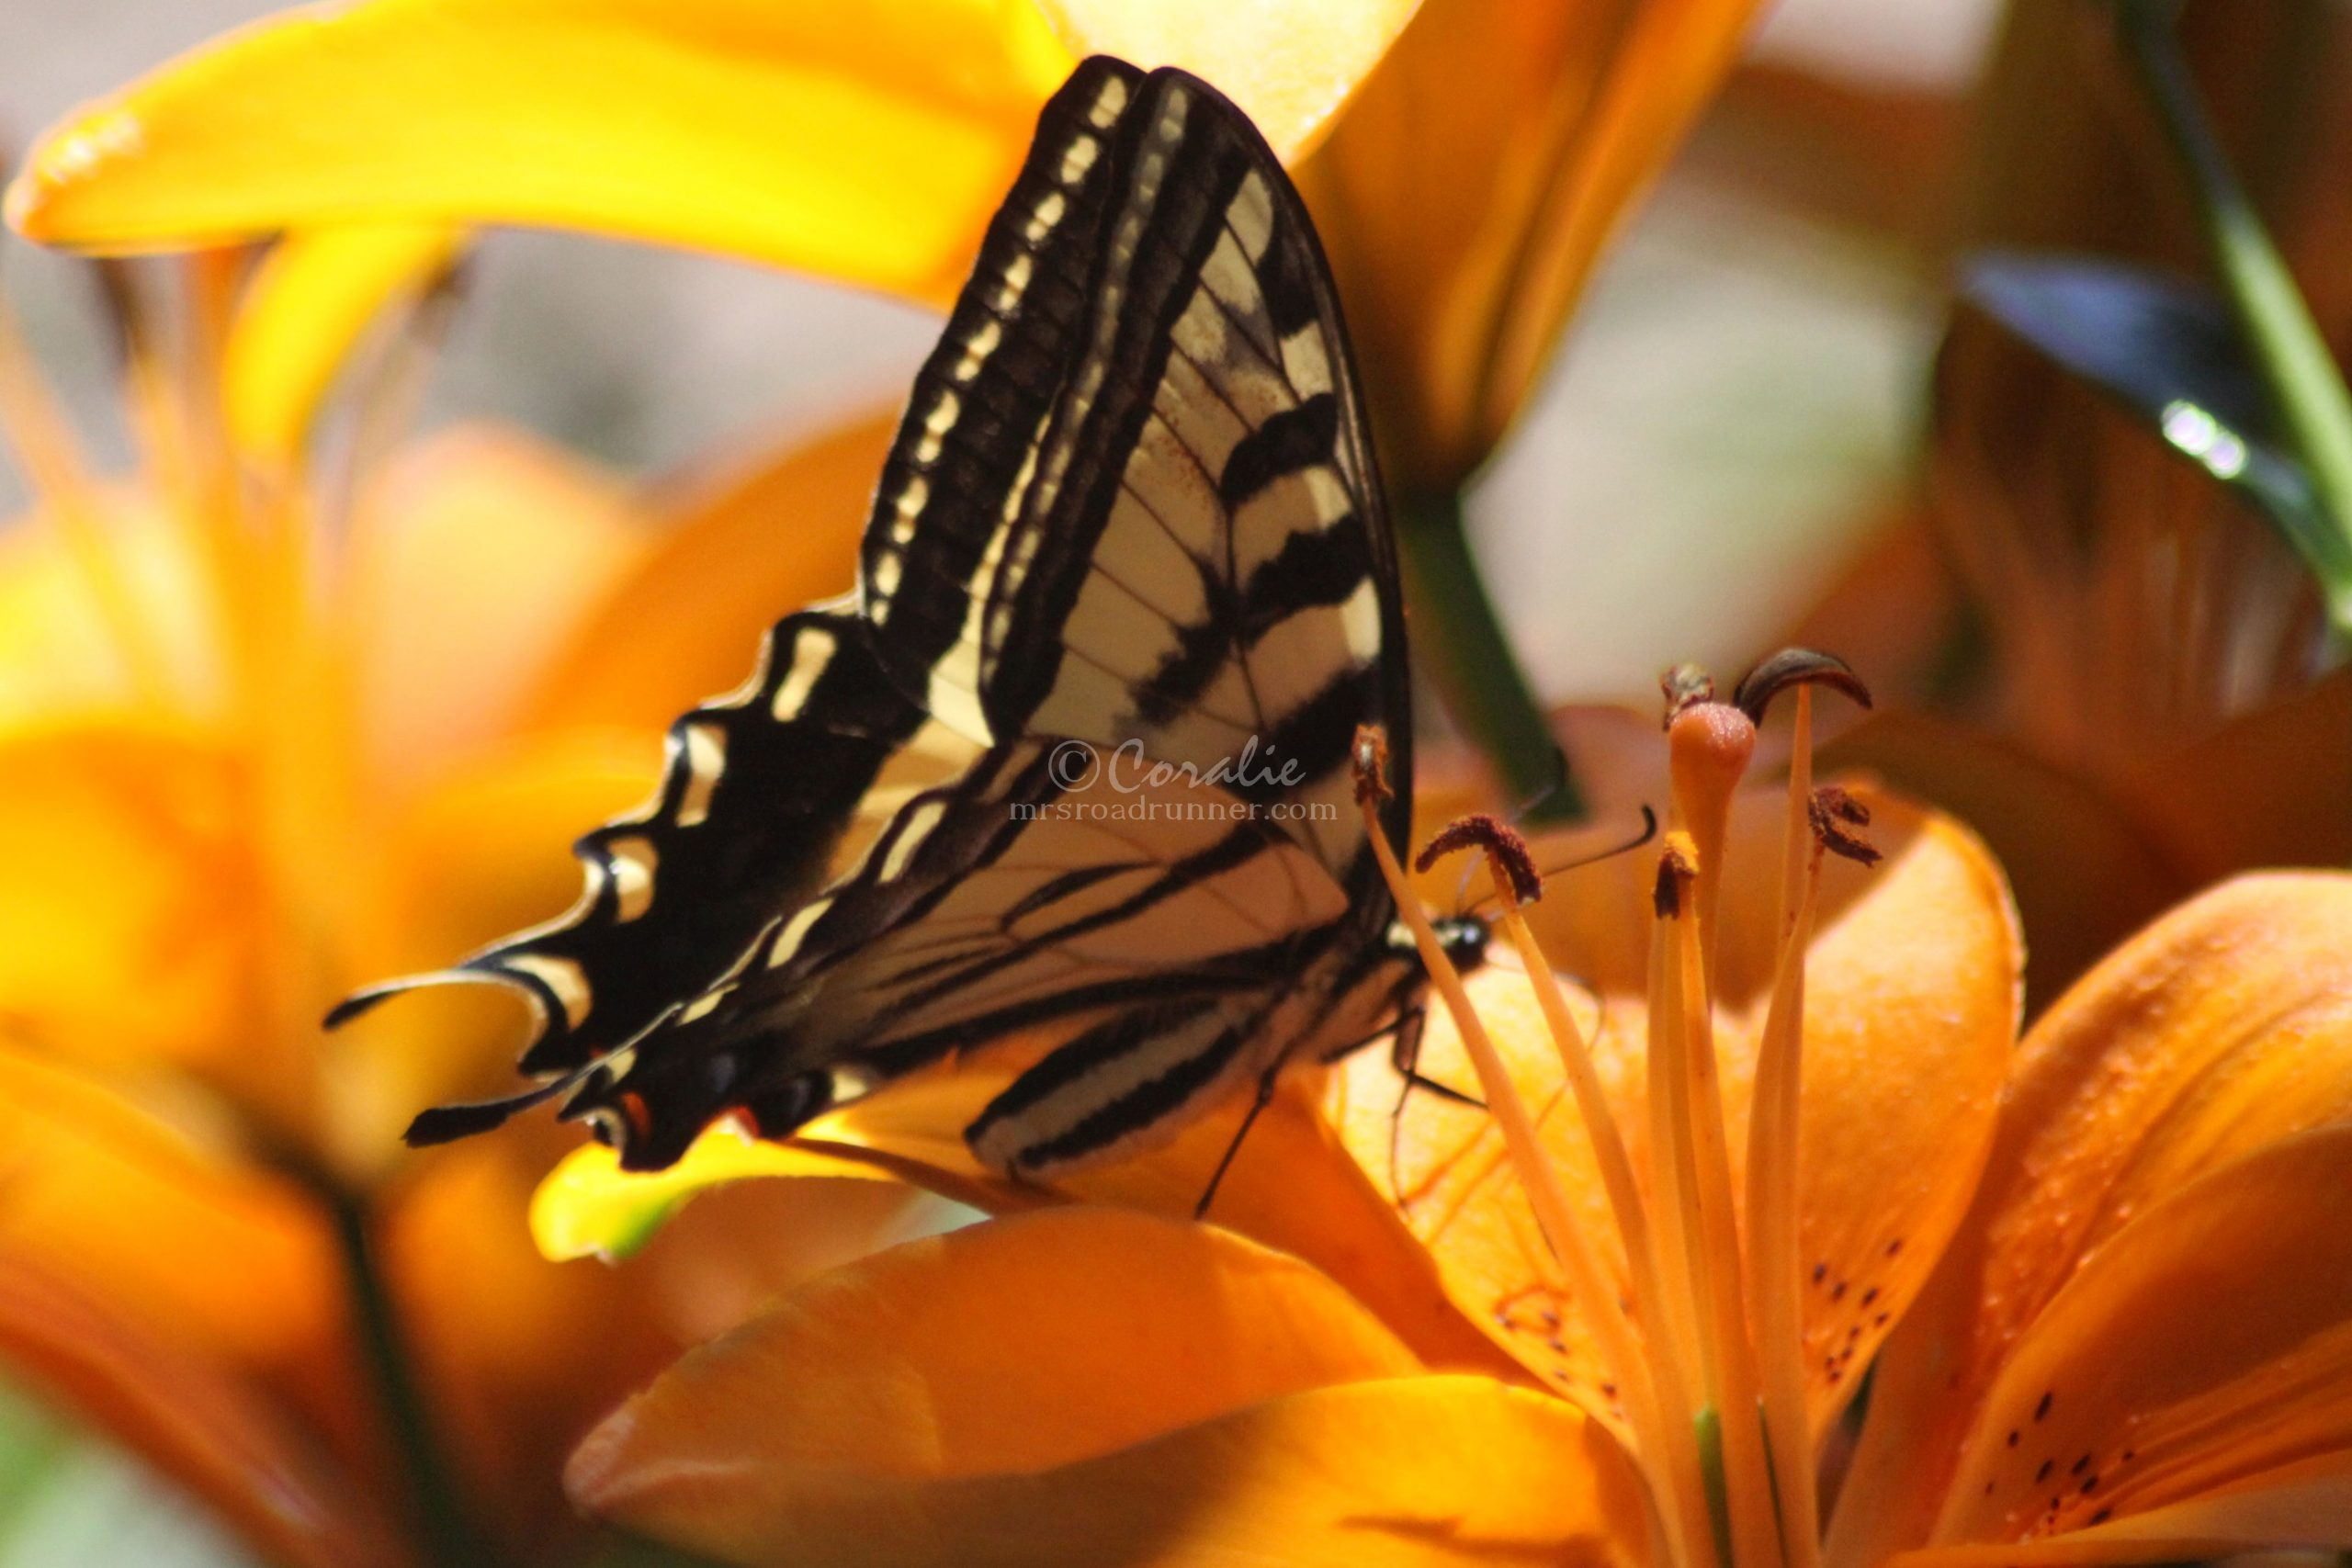 Swallowtail Butterfly On The Orange Lily Flower